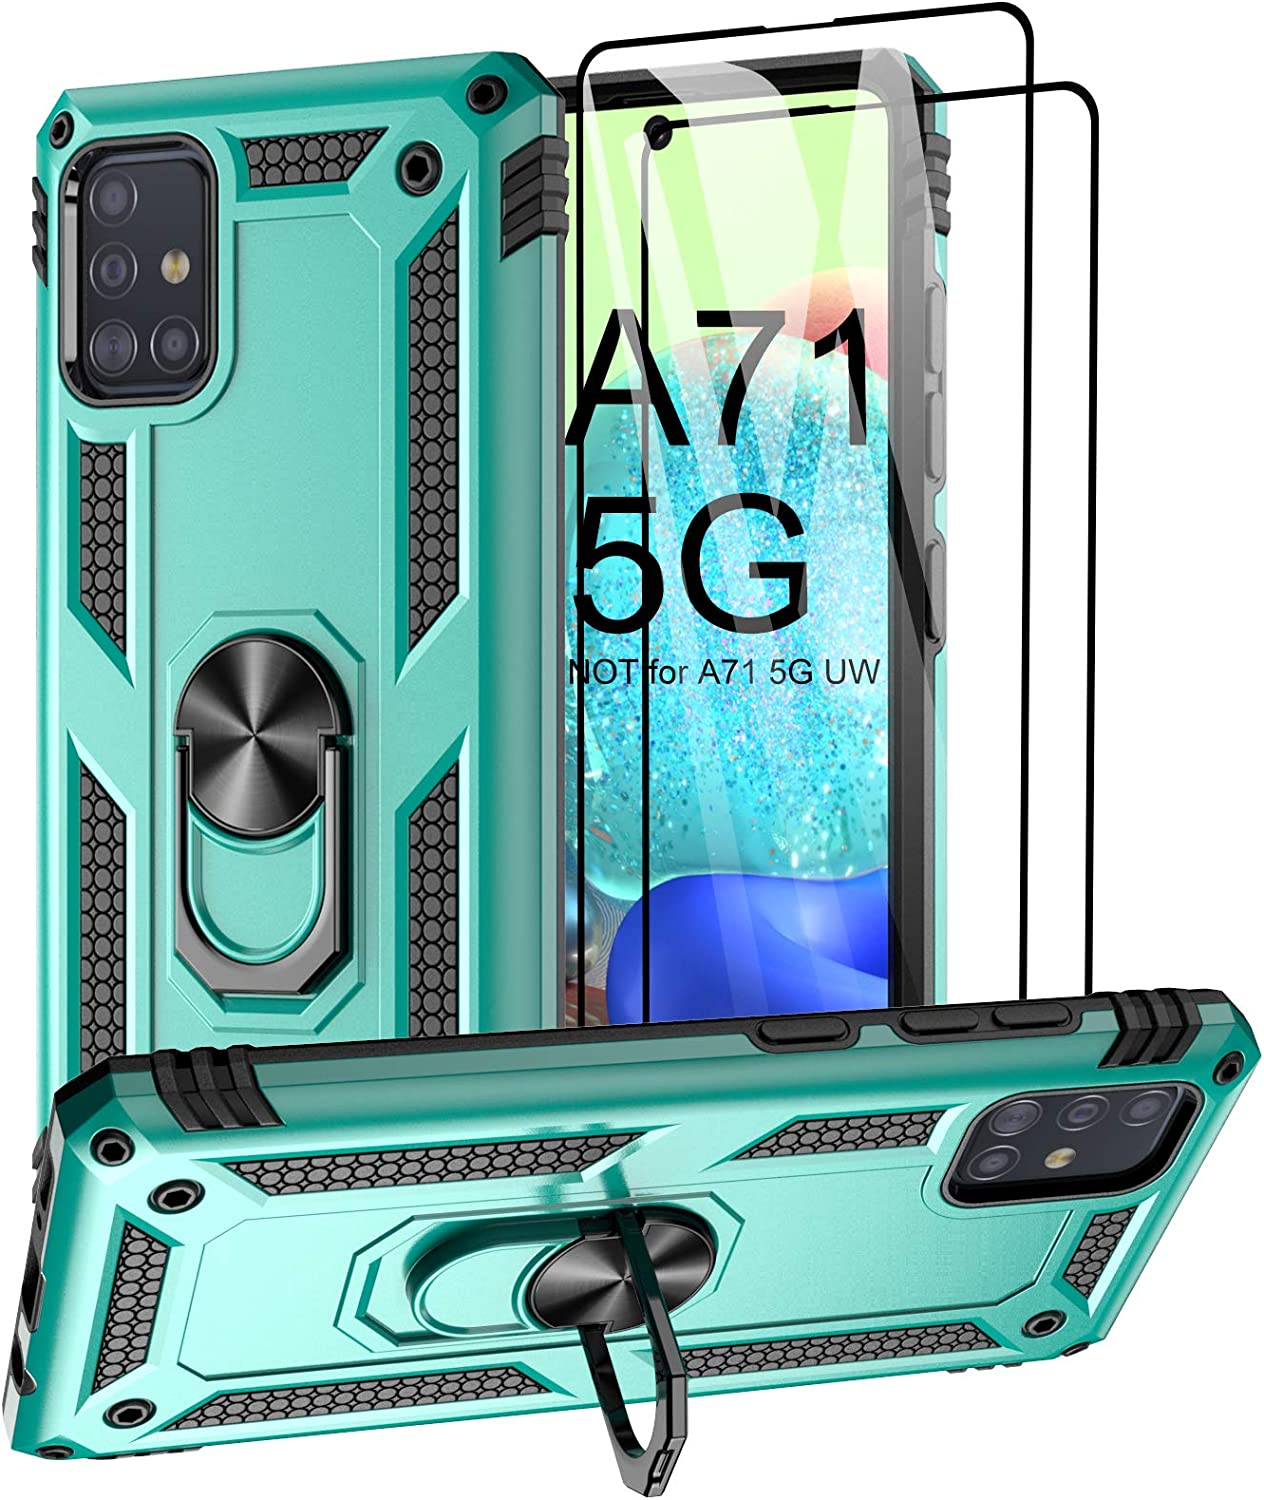 Aliruke Case for Samsung Galaxy A71 5G Case with 2 Tempered Glass Screen Protector, Military Grade Drop Tested Cover Grip Ring Kickstand Protective Phone Cases for Samsung Galaxy A71 5G A716U, Mint